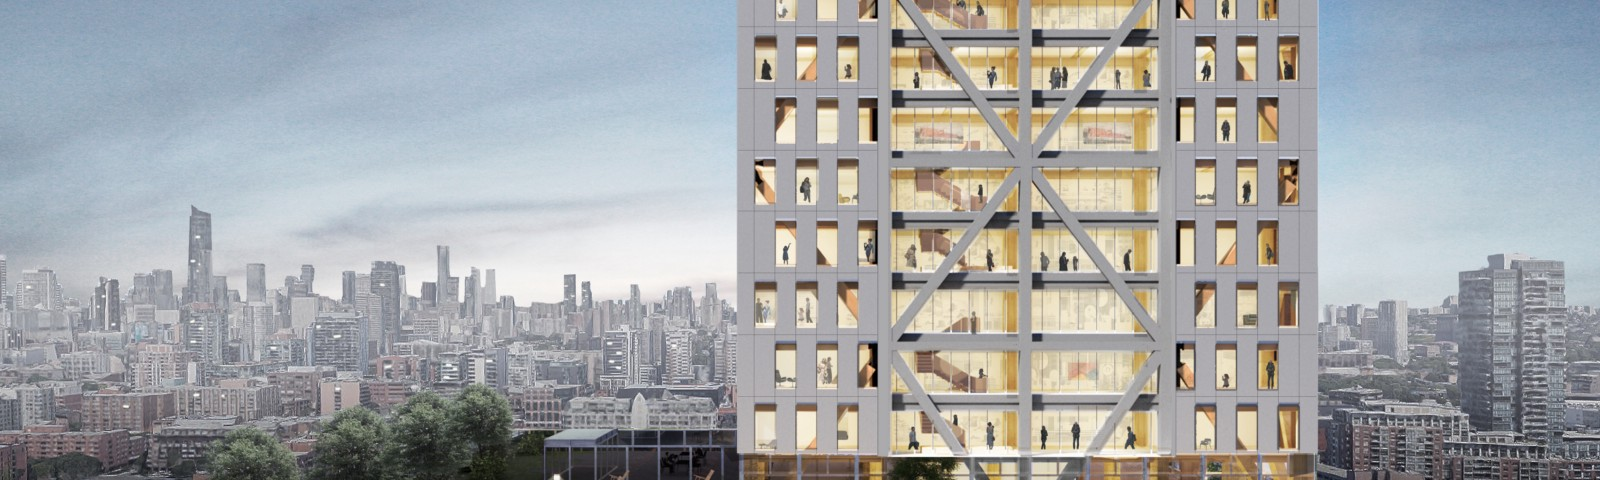 Architectural rendering shows the exterior of a tall timber building. A city skyline is in the background.